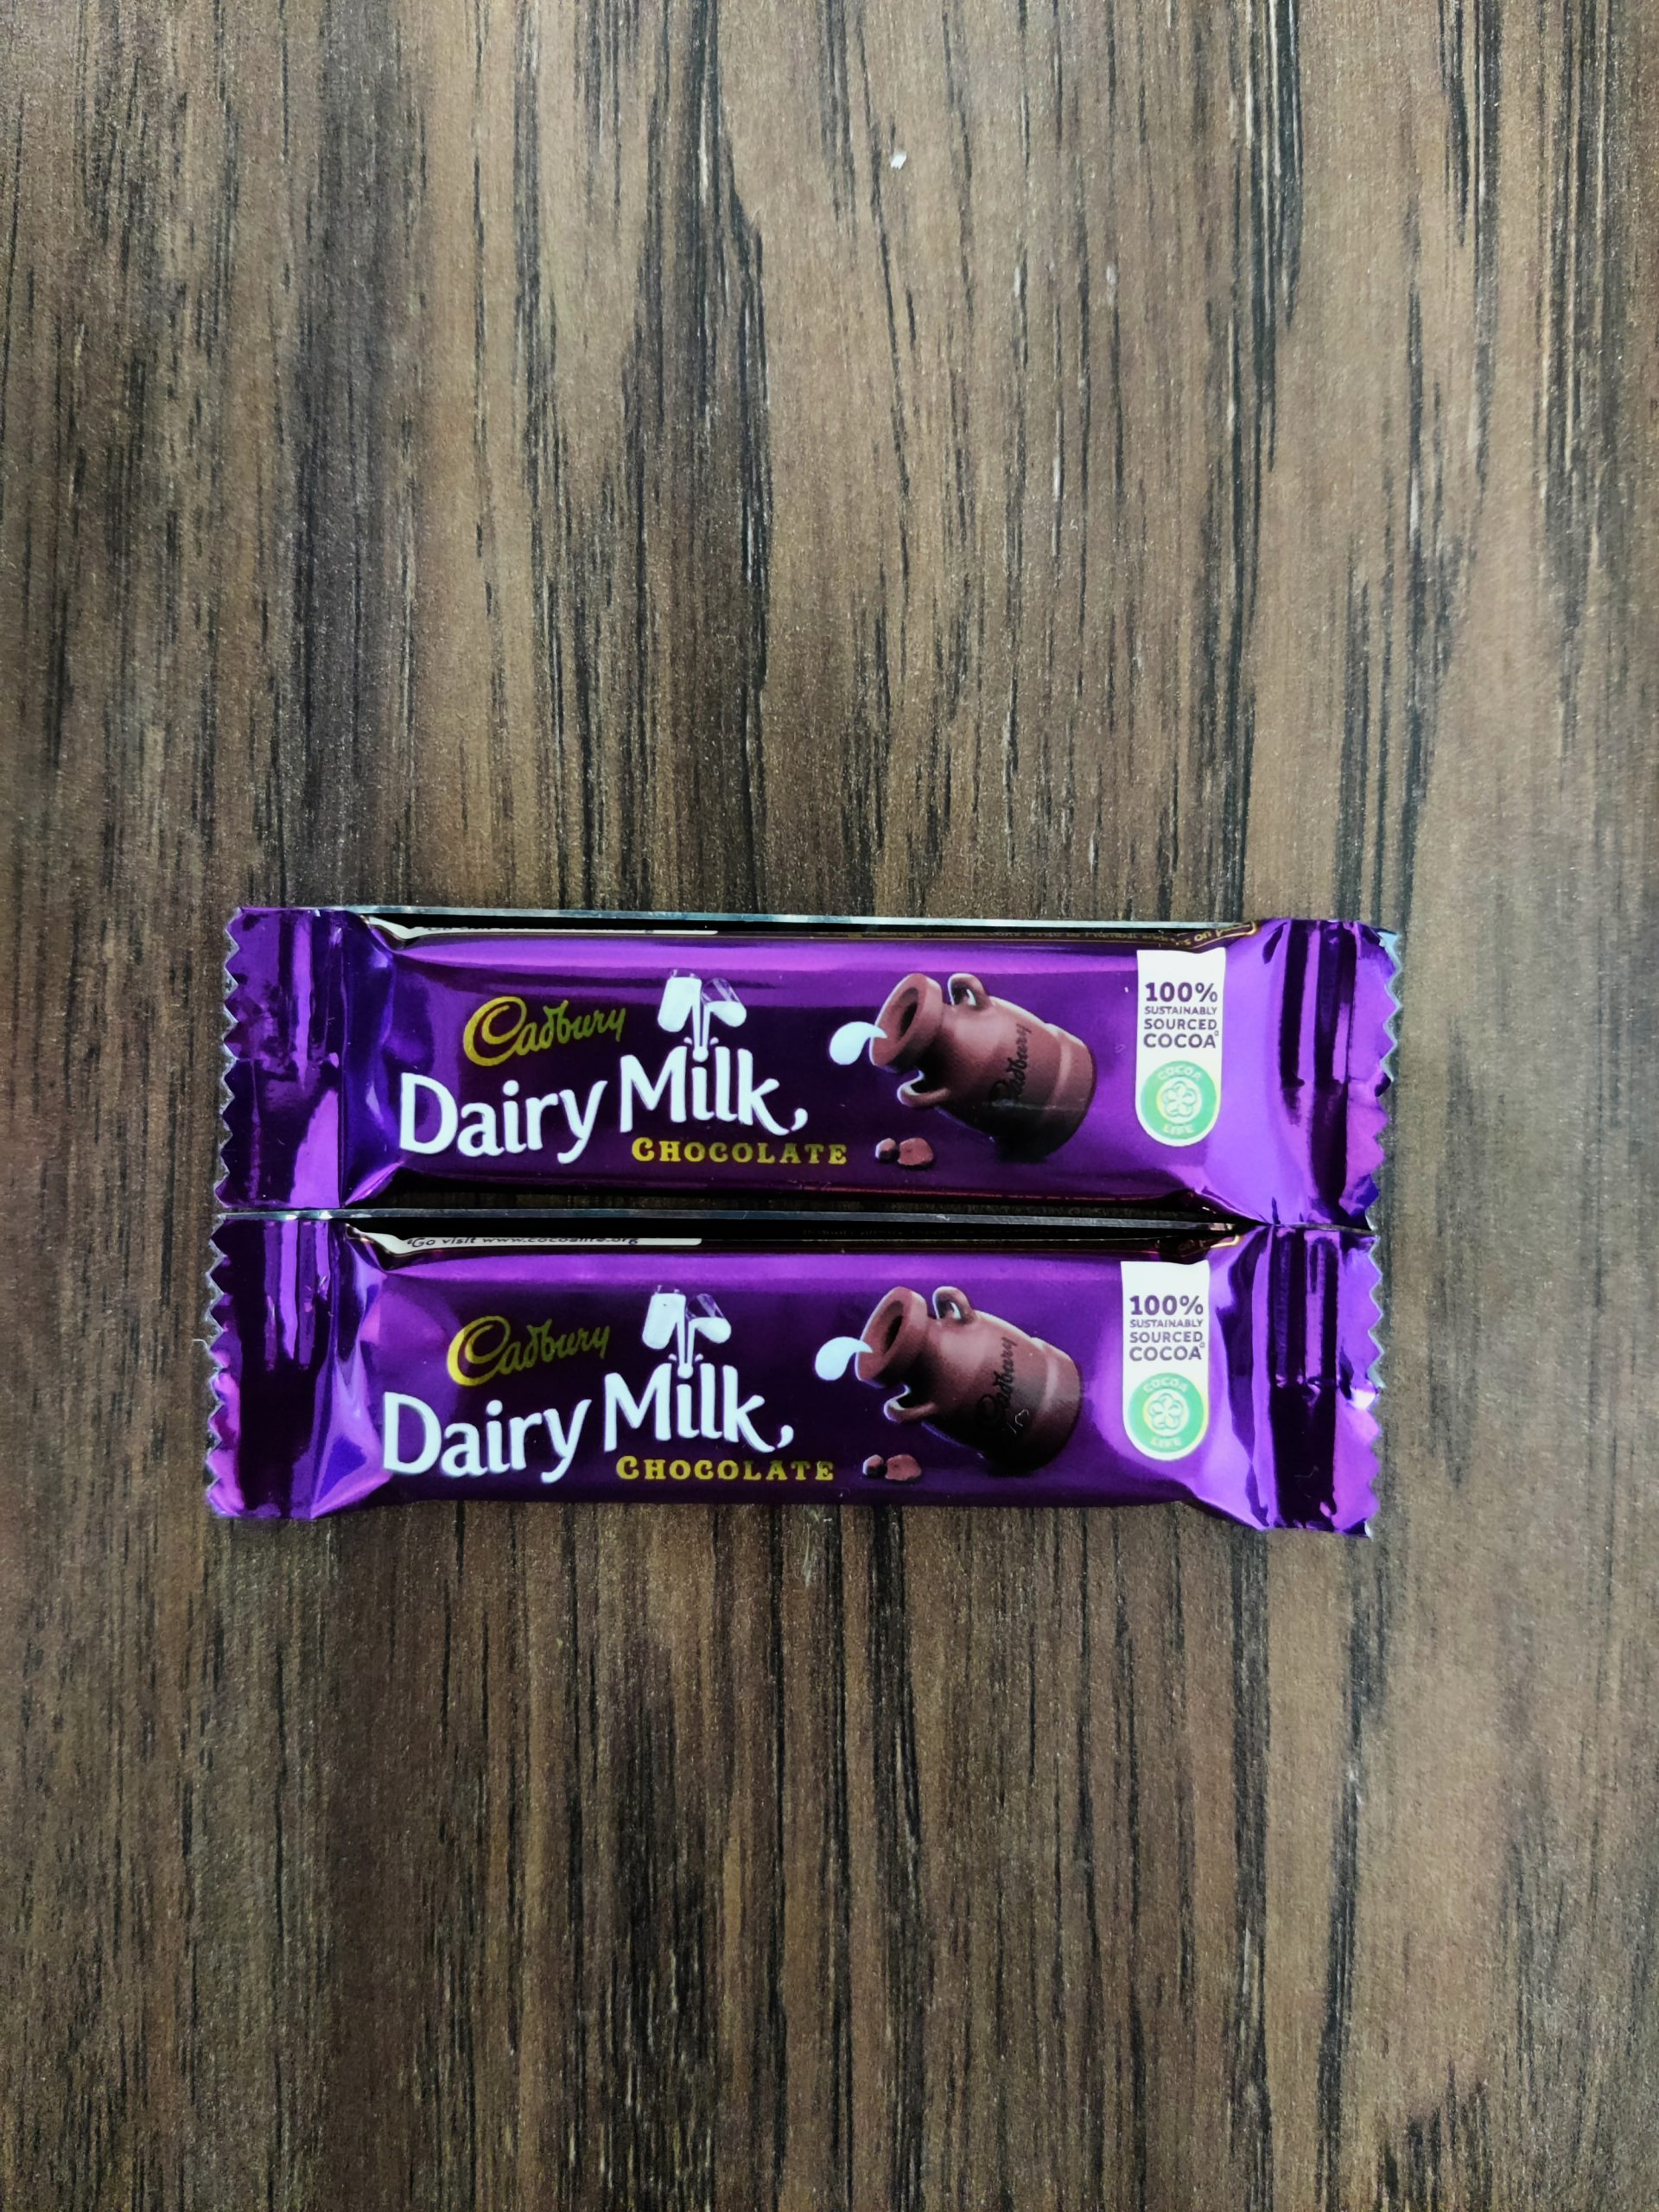 Dairy milk on table